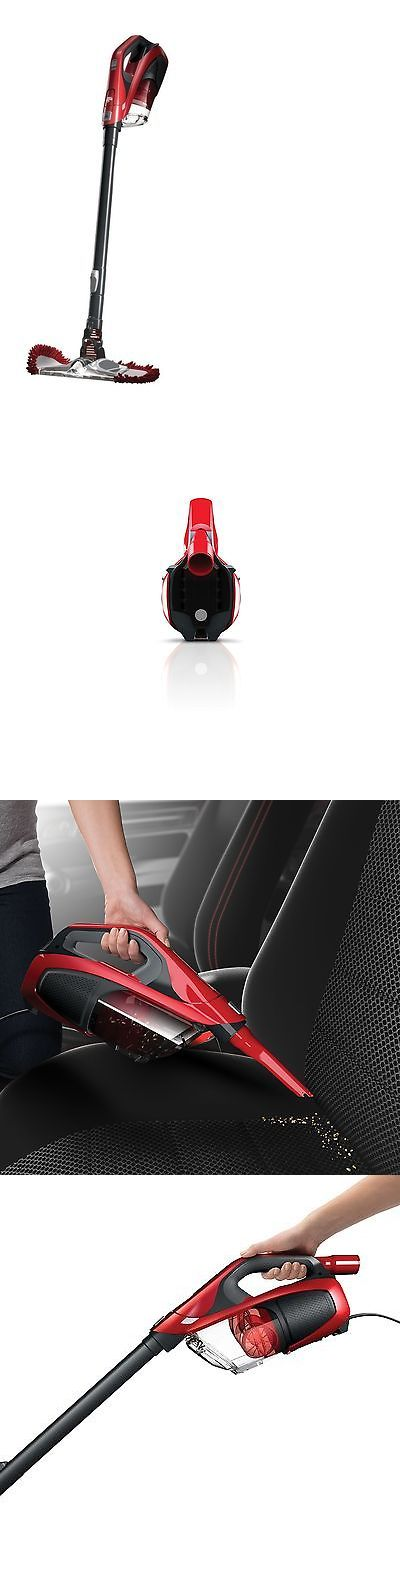 Vacuum Cleaners 20614: Dirt Devil 360 Reach Power Bagless Handheld Vacuum And Stick Vacuum, Sd12520 -> BUY IT NOW ONLY: $119.99 on eBay!